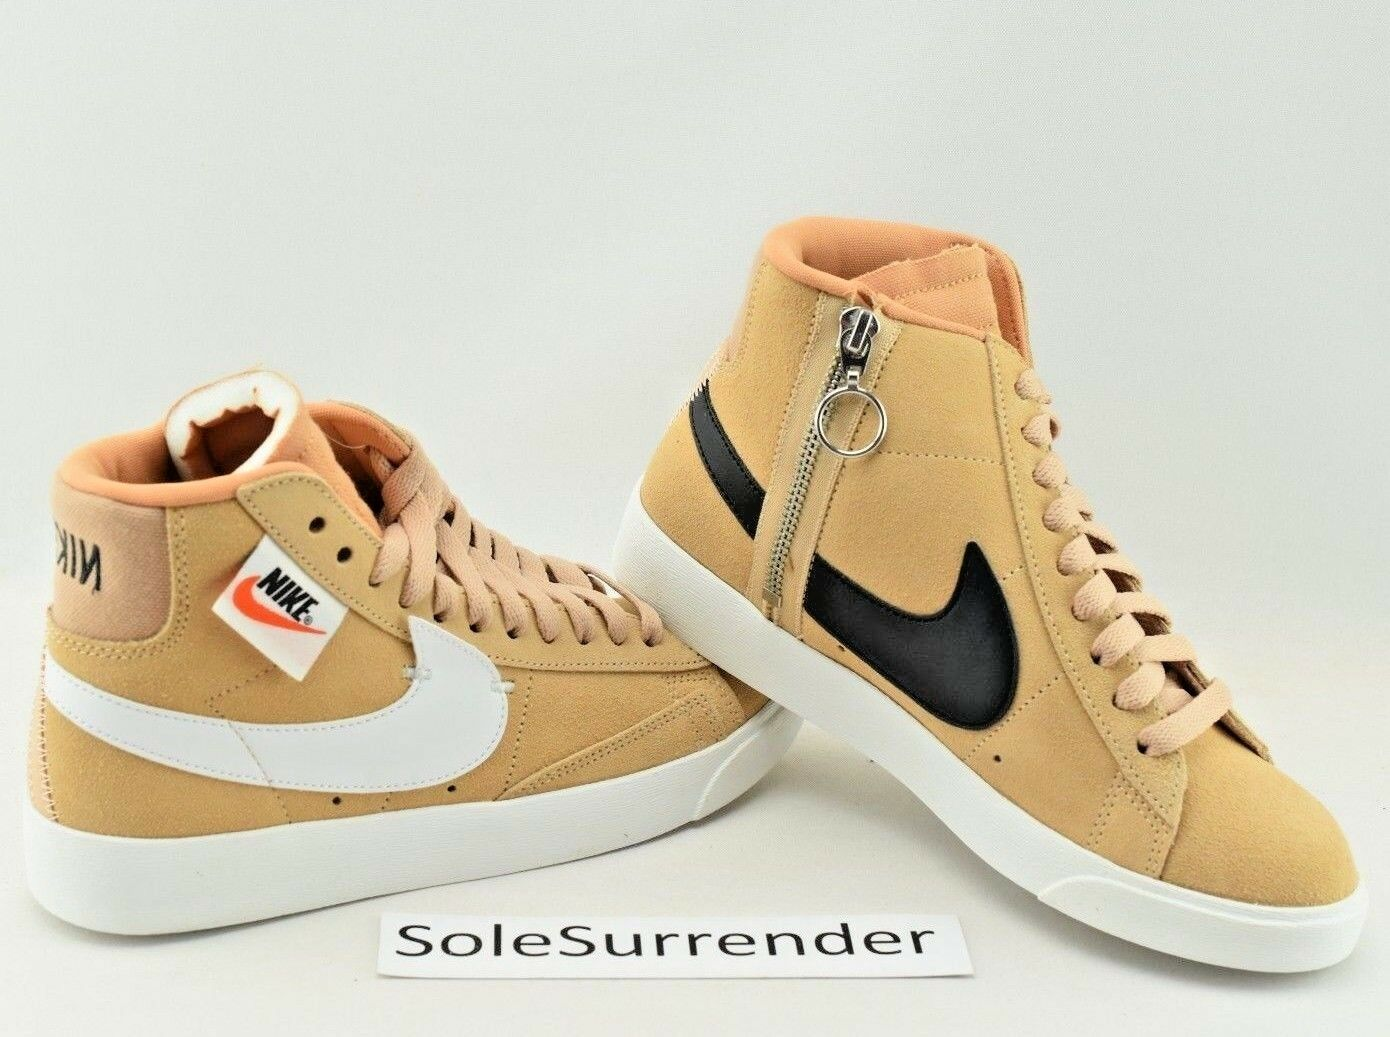 Nike Blazer Mid Rebel -CHOOSE SIZE - BQ4022-200 XX Off White Beige Tan Zip Black